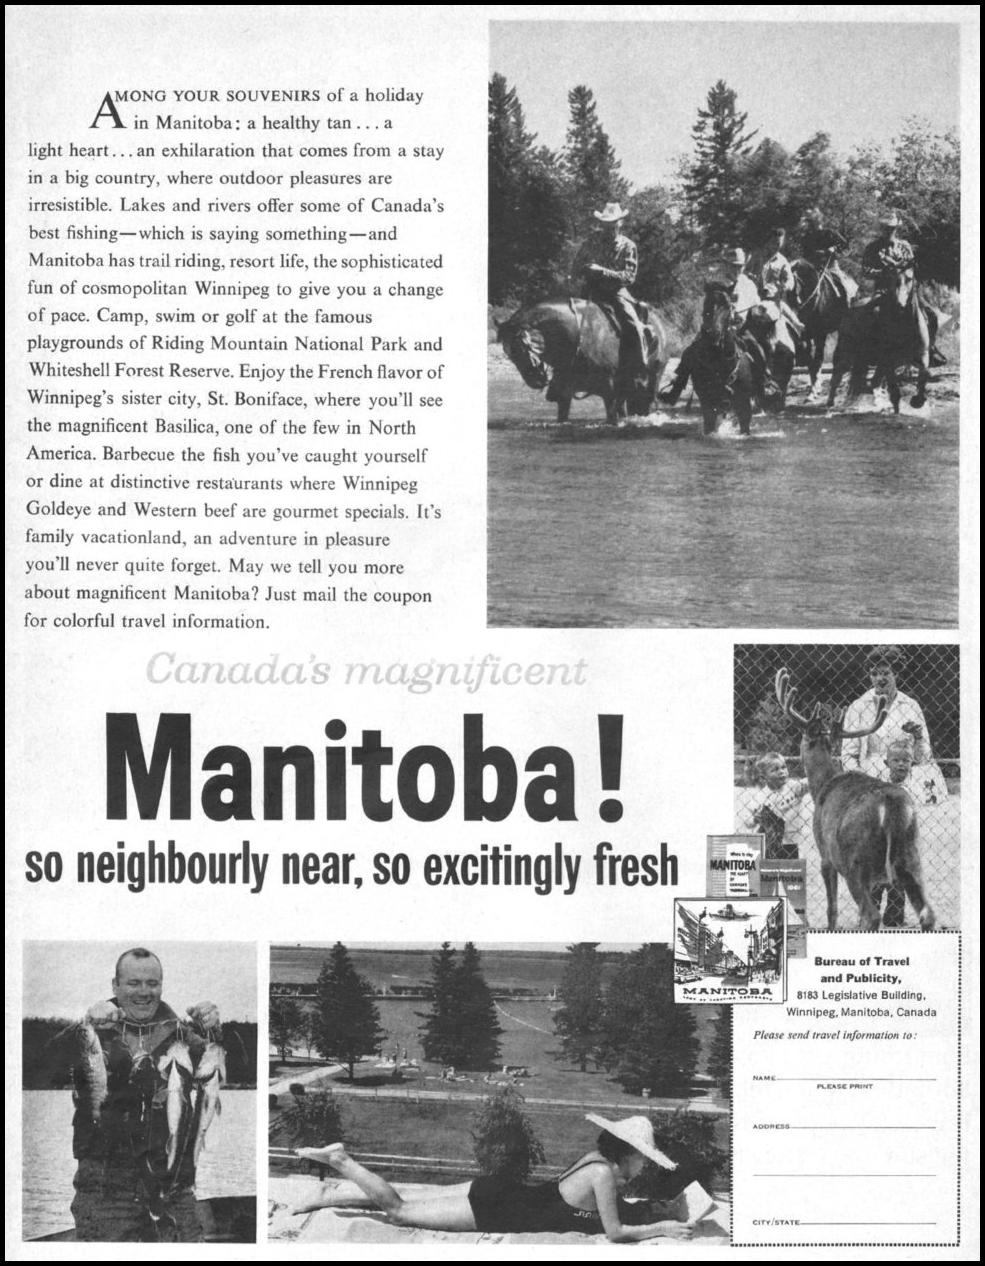 MANITOBA VACATIONS LIFE 05/05/1961